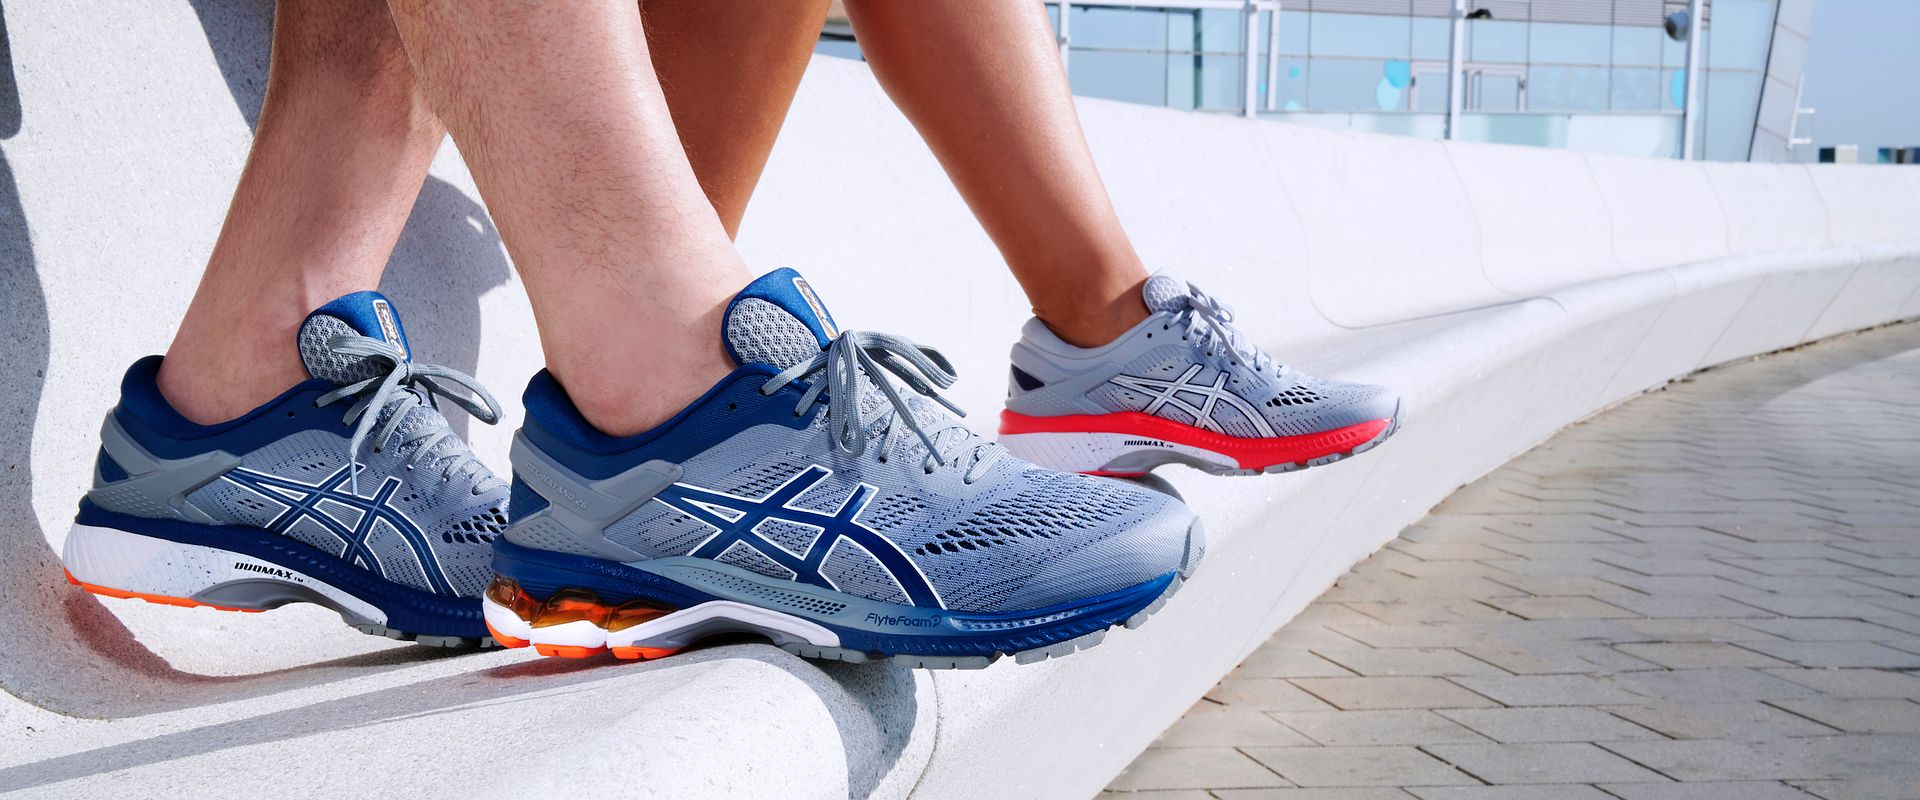 Shoe Review: ASICS GEL Kayano 26 | Fleet Feet